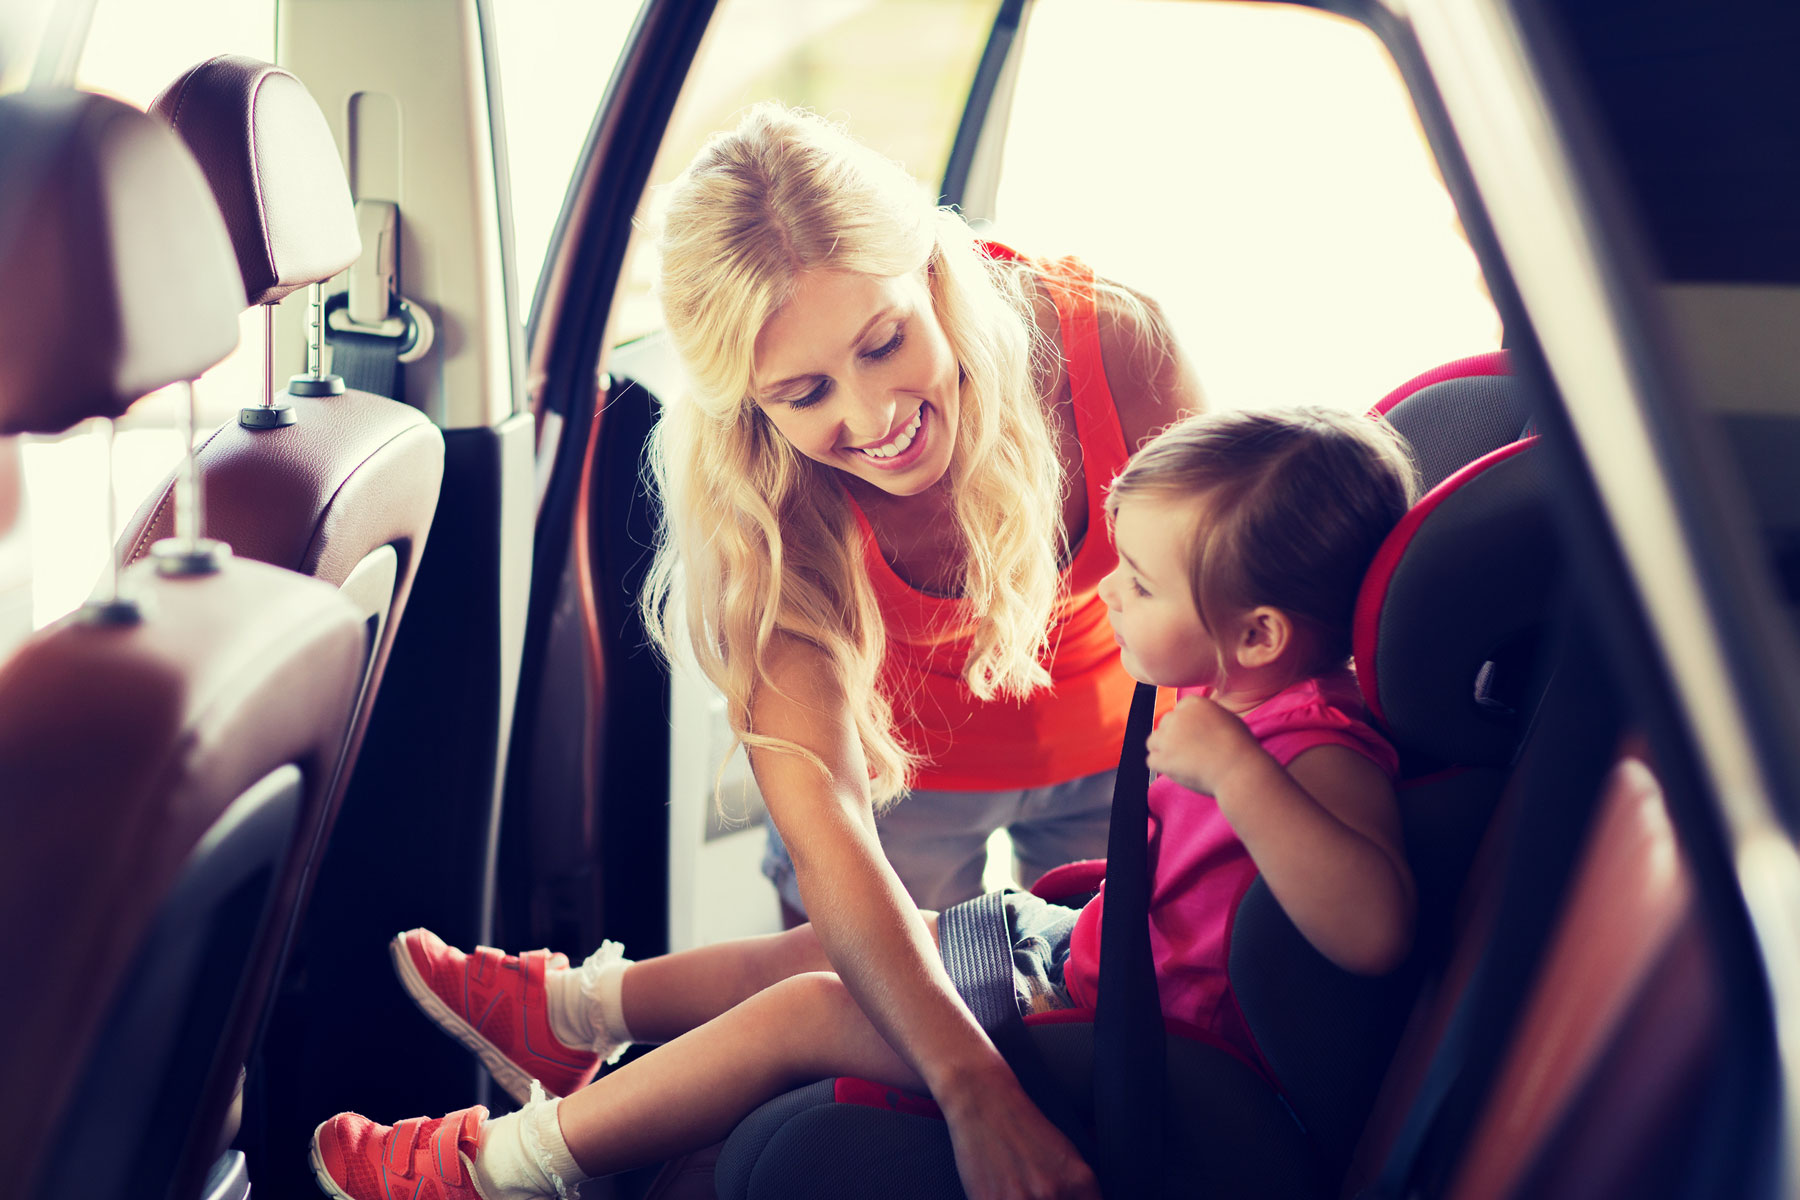 3 Tips to keep a minivan clean and organized